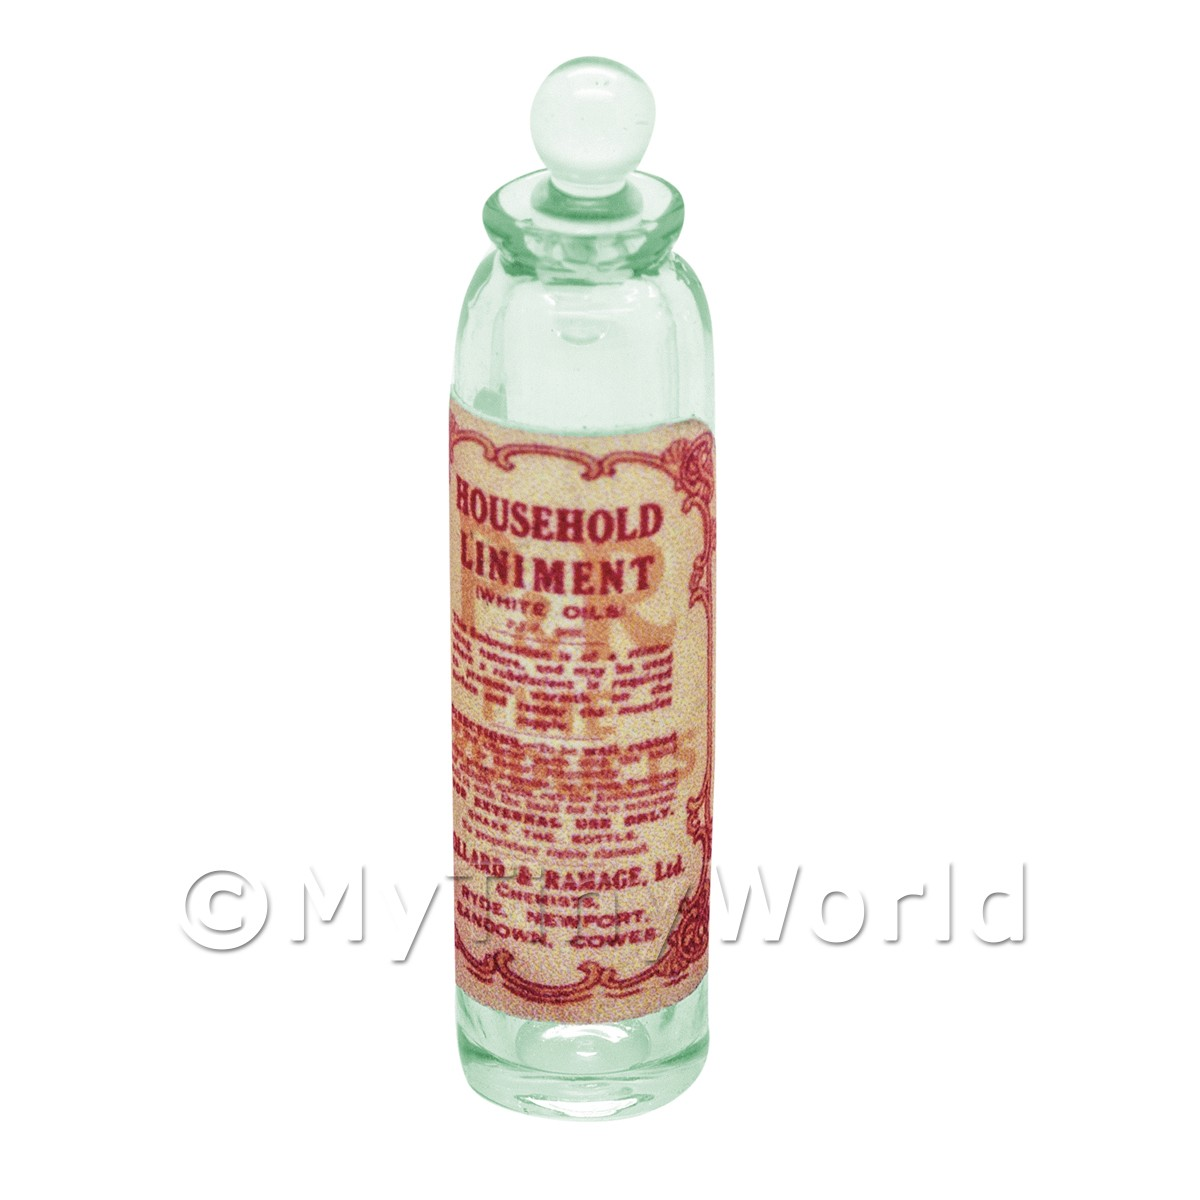 Miniature Household Liniment Green Glass Apothecary Bottle